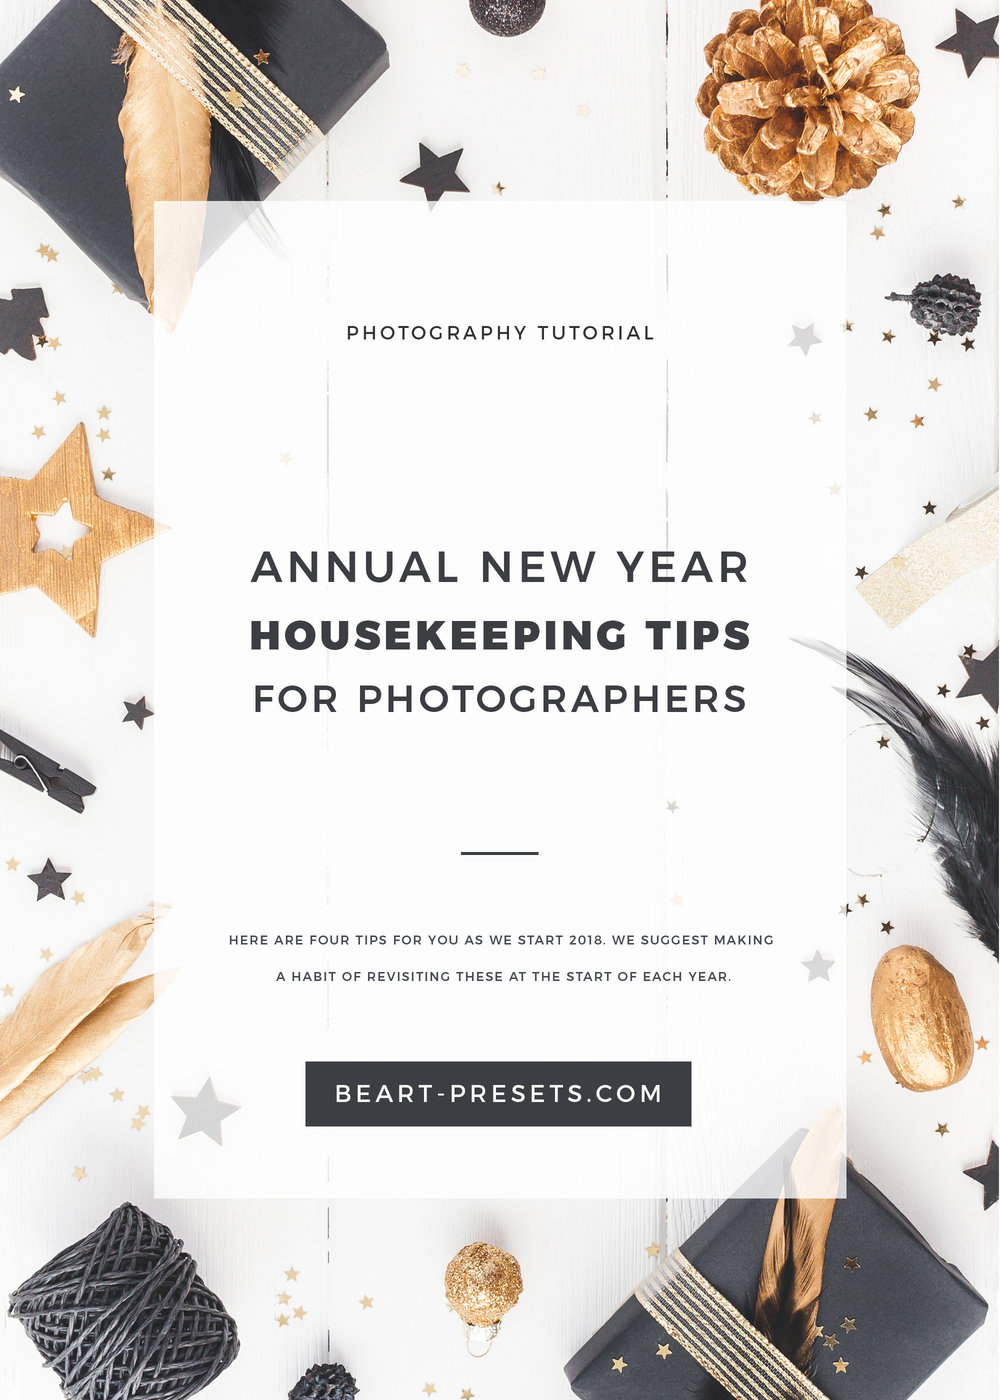 Annual New Year Housekeeping Tips for photographers